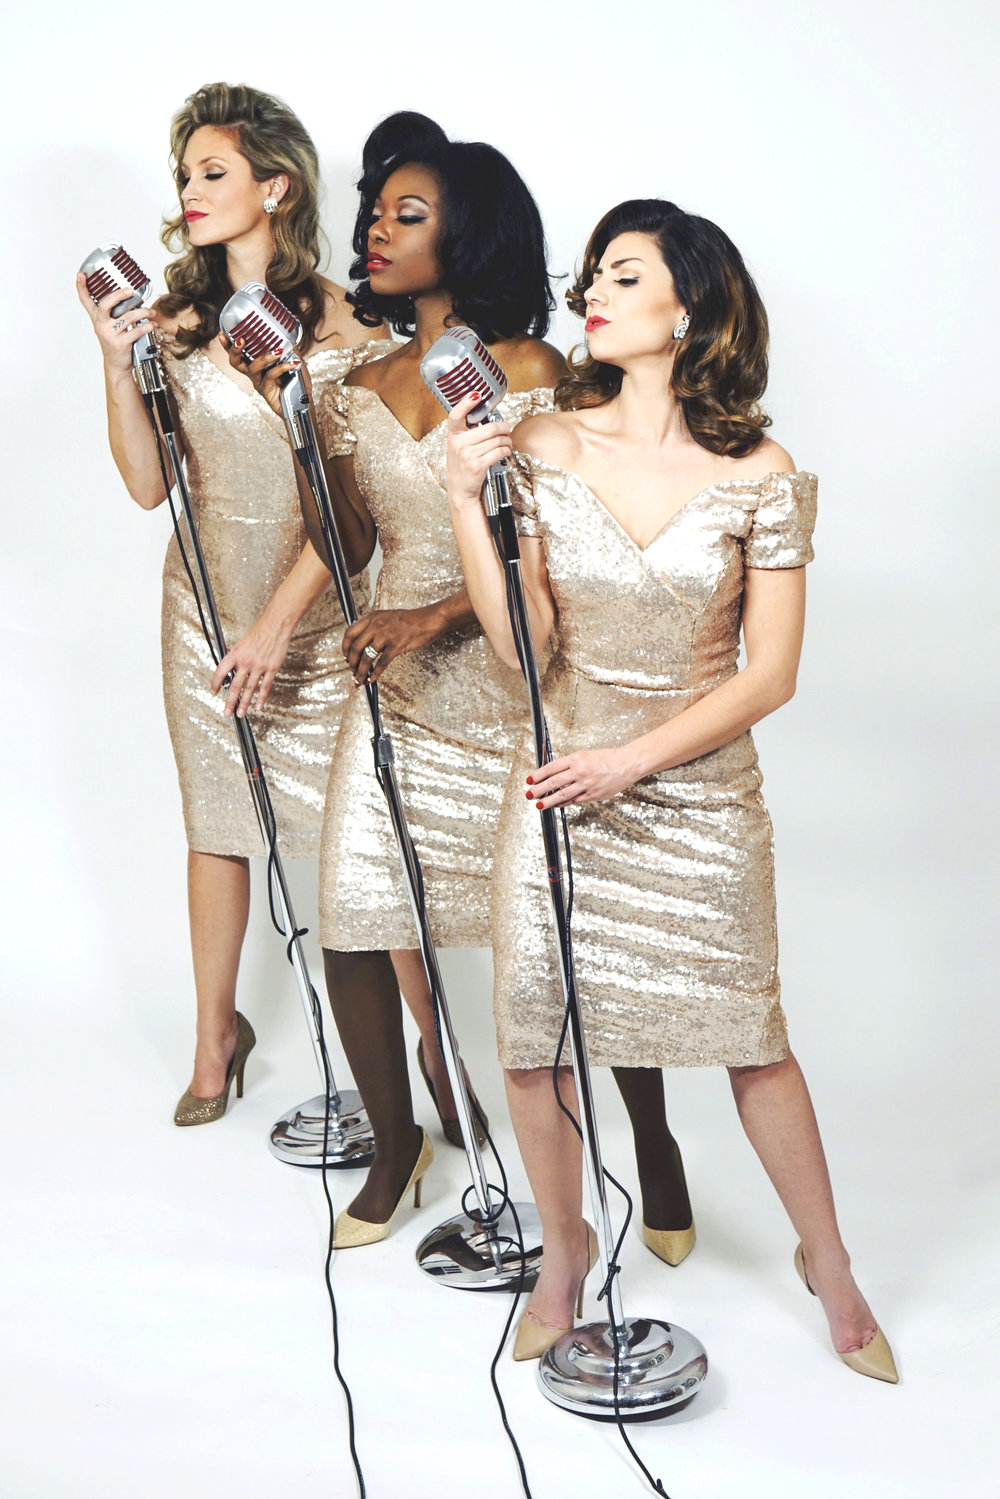 The Lovettes on Mic